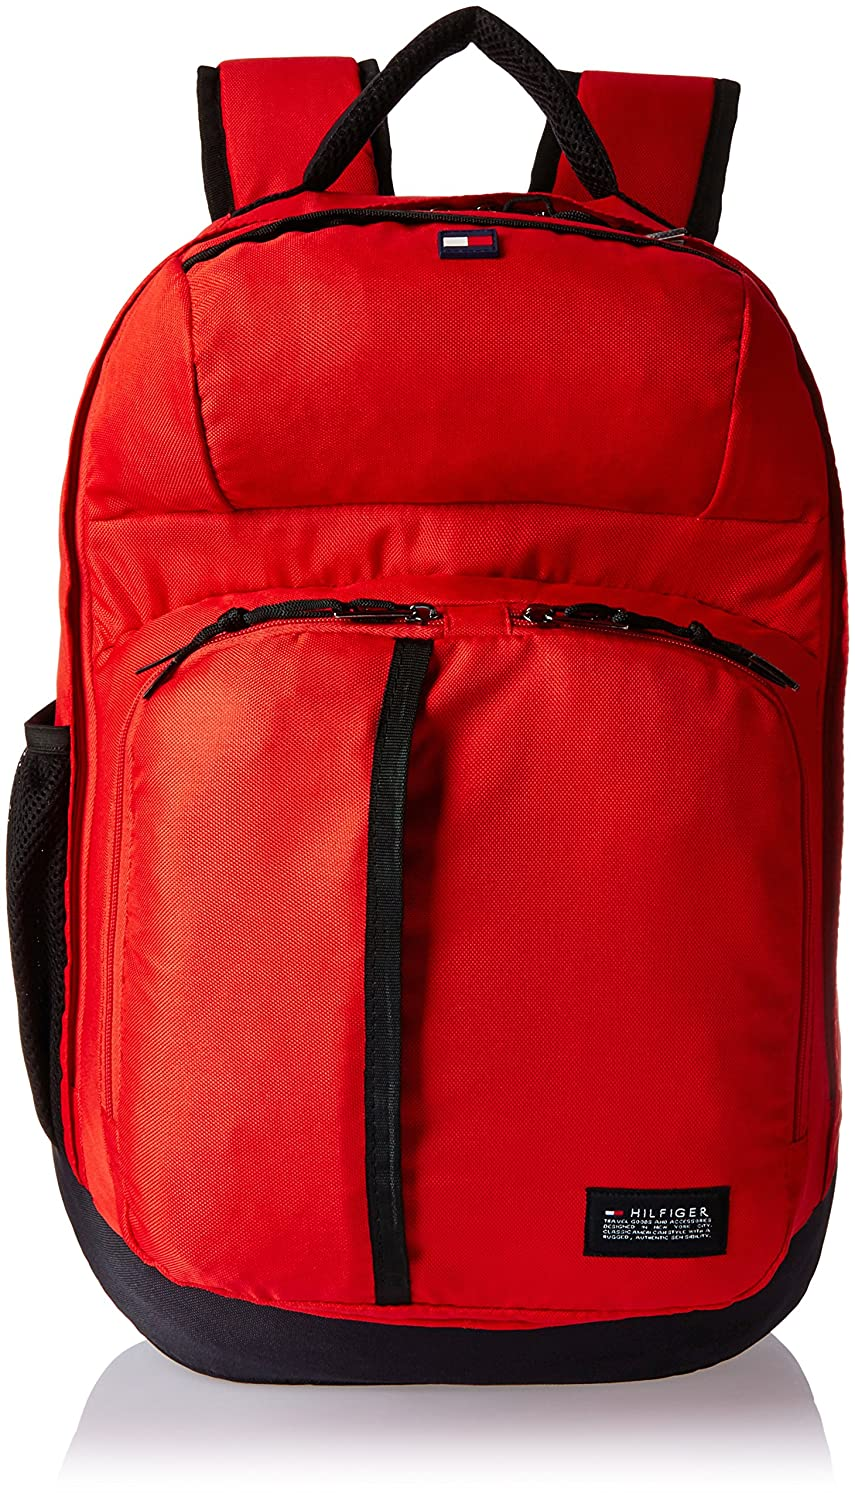 Tommy Hilfiger Red Casual Backpack (TH/STPPL04COR)